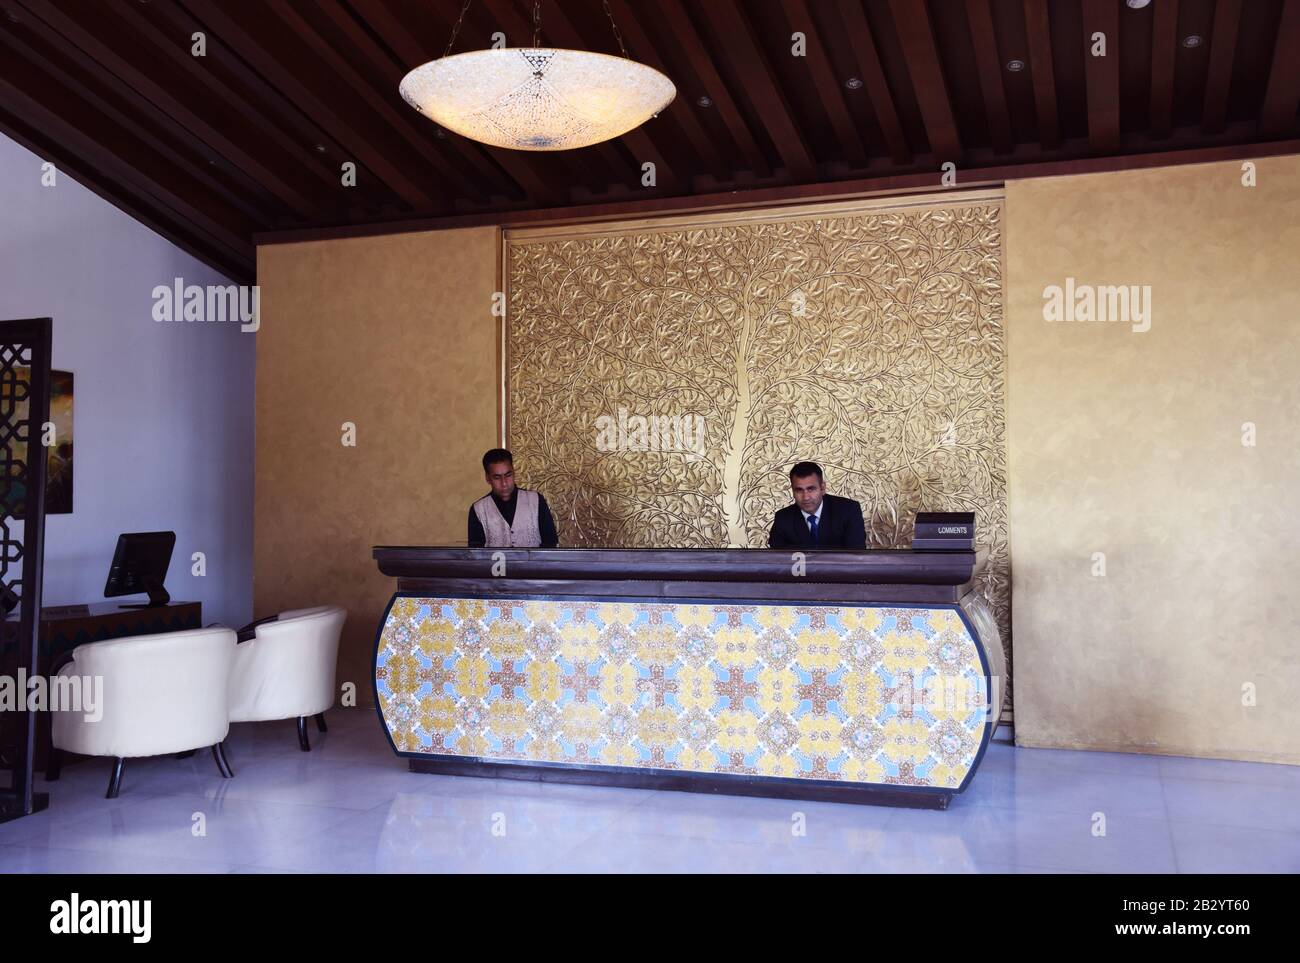 A Hotel reception desk in an Indian Hotel Stock Photo